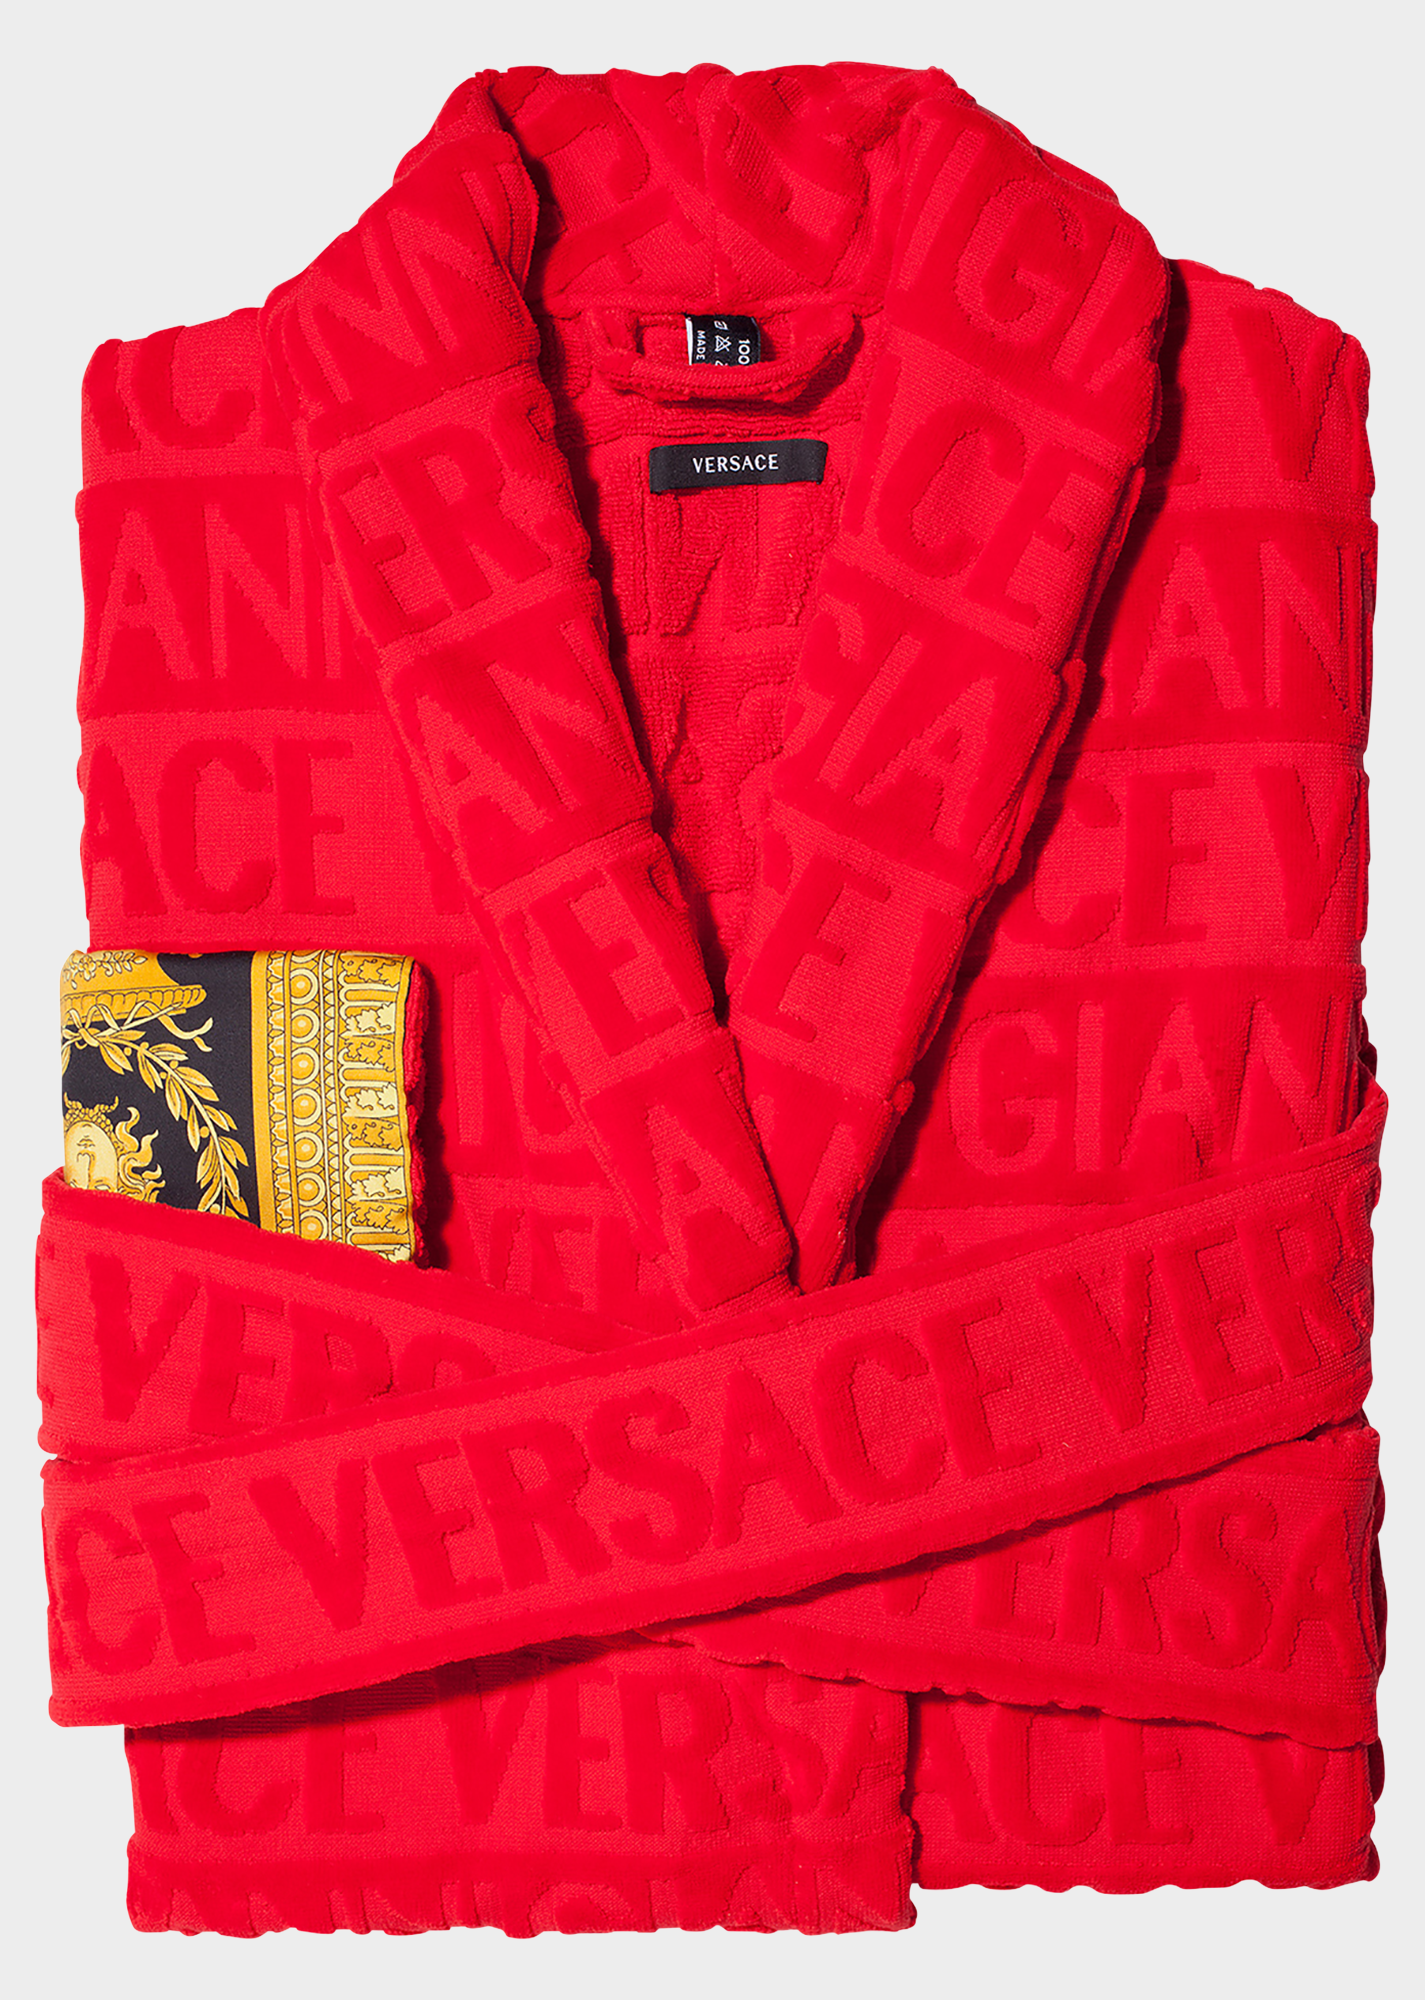 versace-bathrobe-robe-red-athletes-fashion-sports-fashion